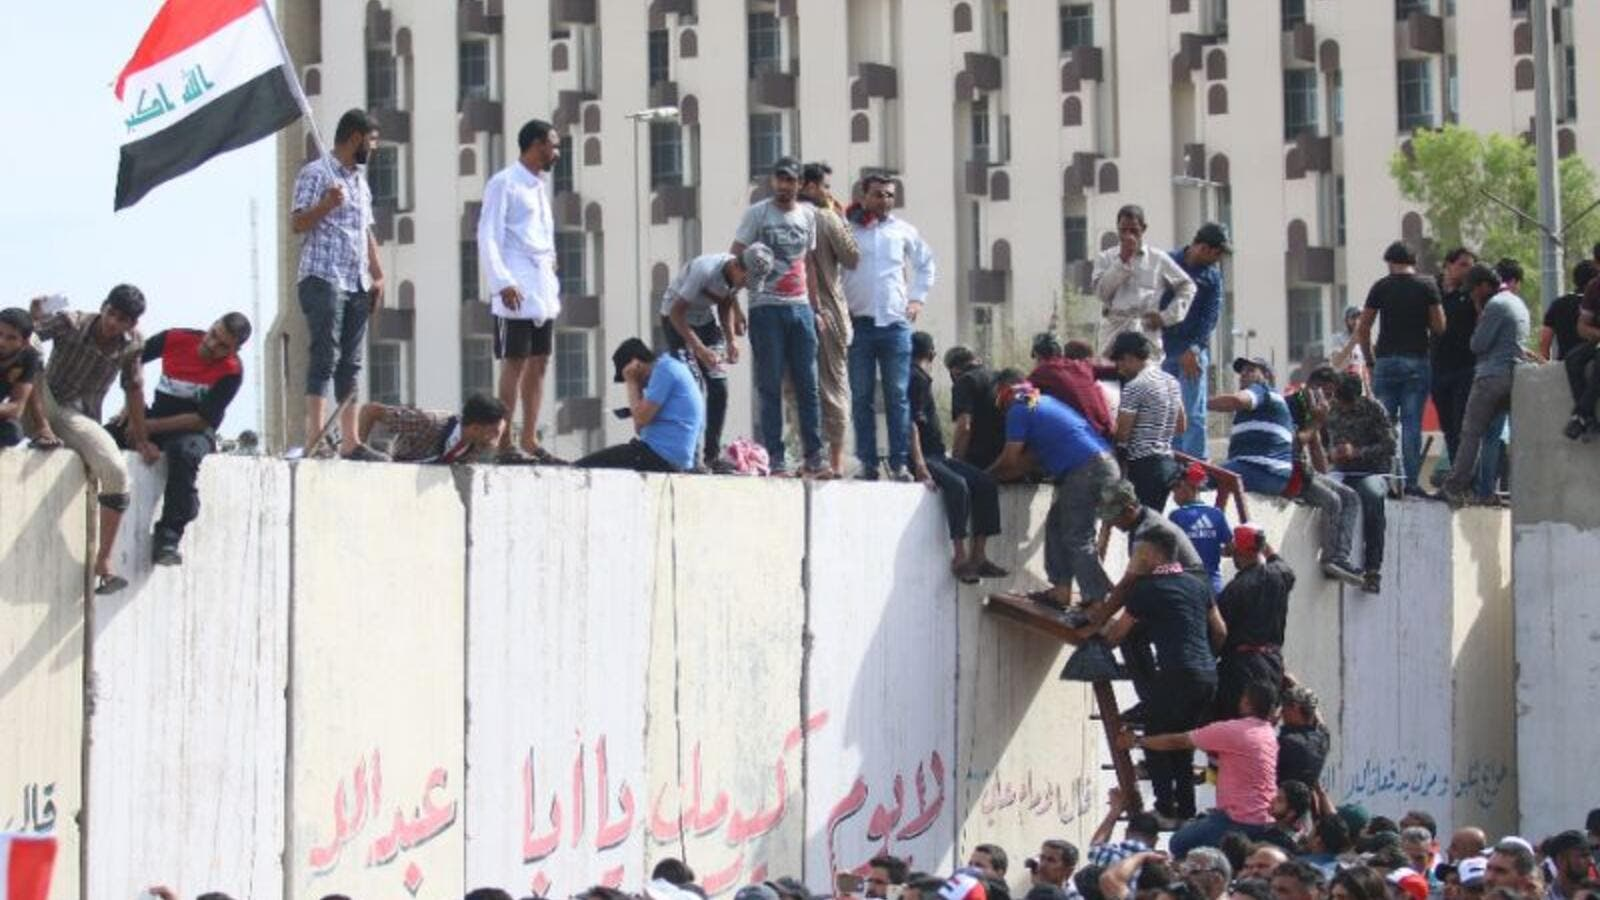 Iraqi protesters climb over a concrete wall surrounding the parliament after breaking into Baghdad. (AFP/File)